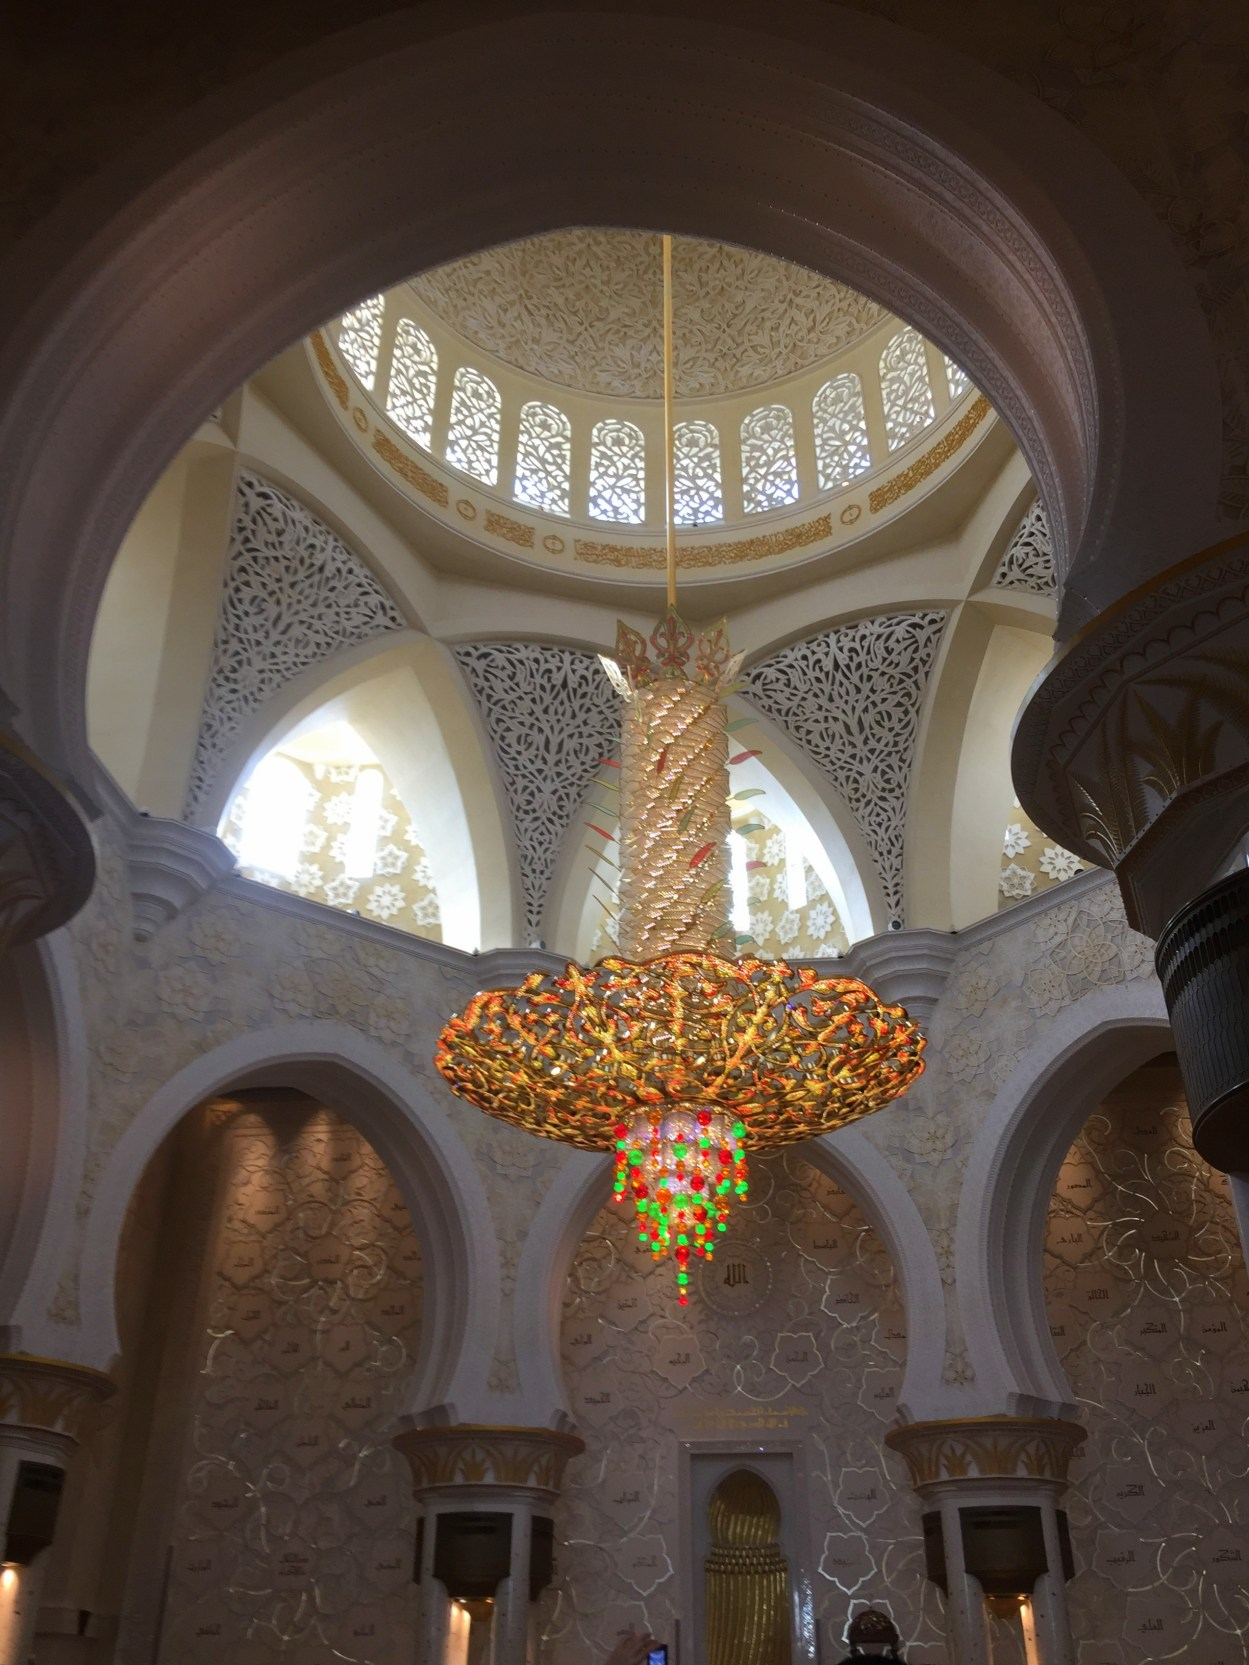 The Grand Mosque in Abu Dhabi